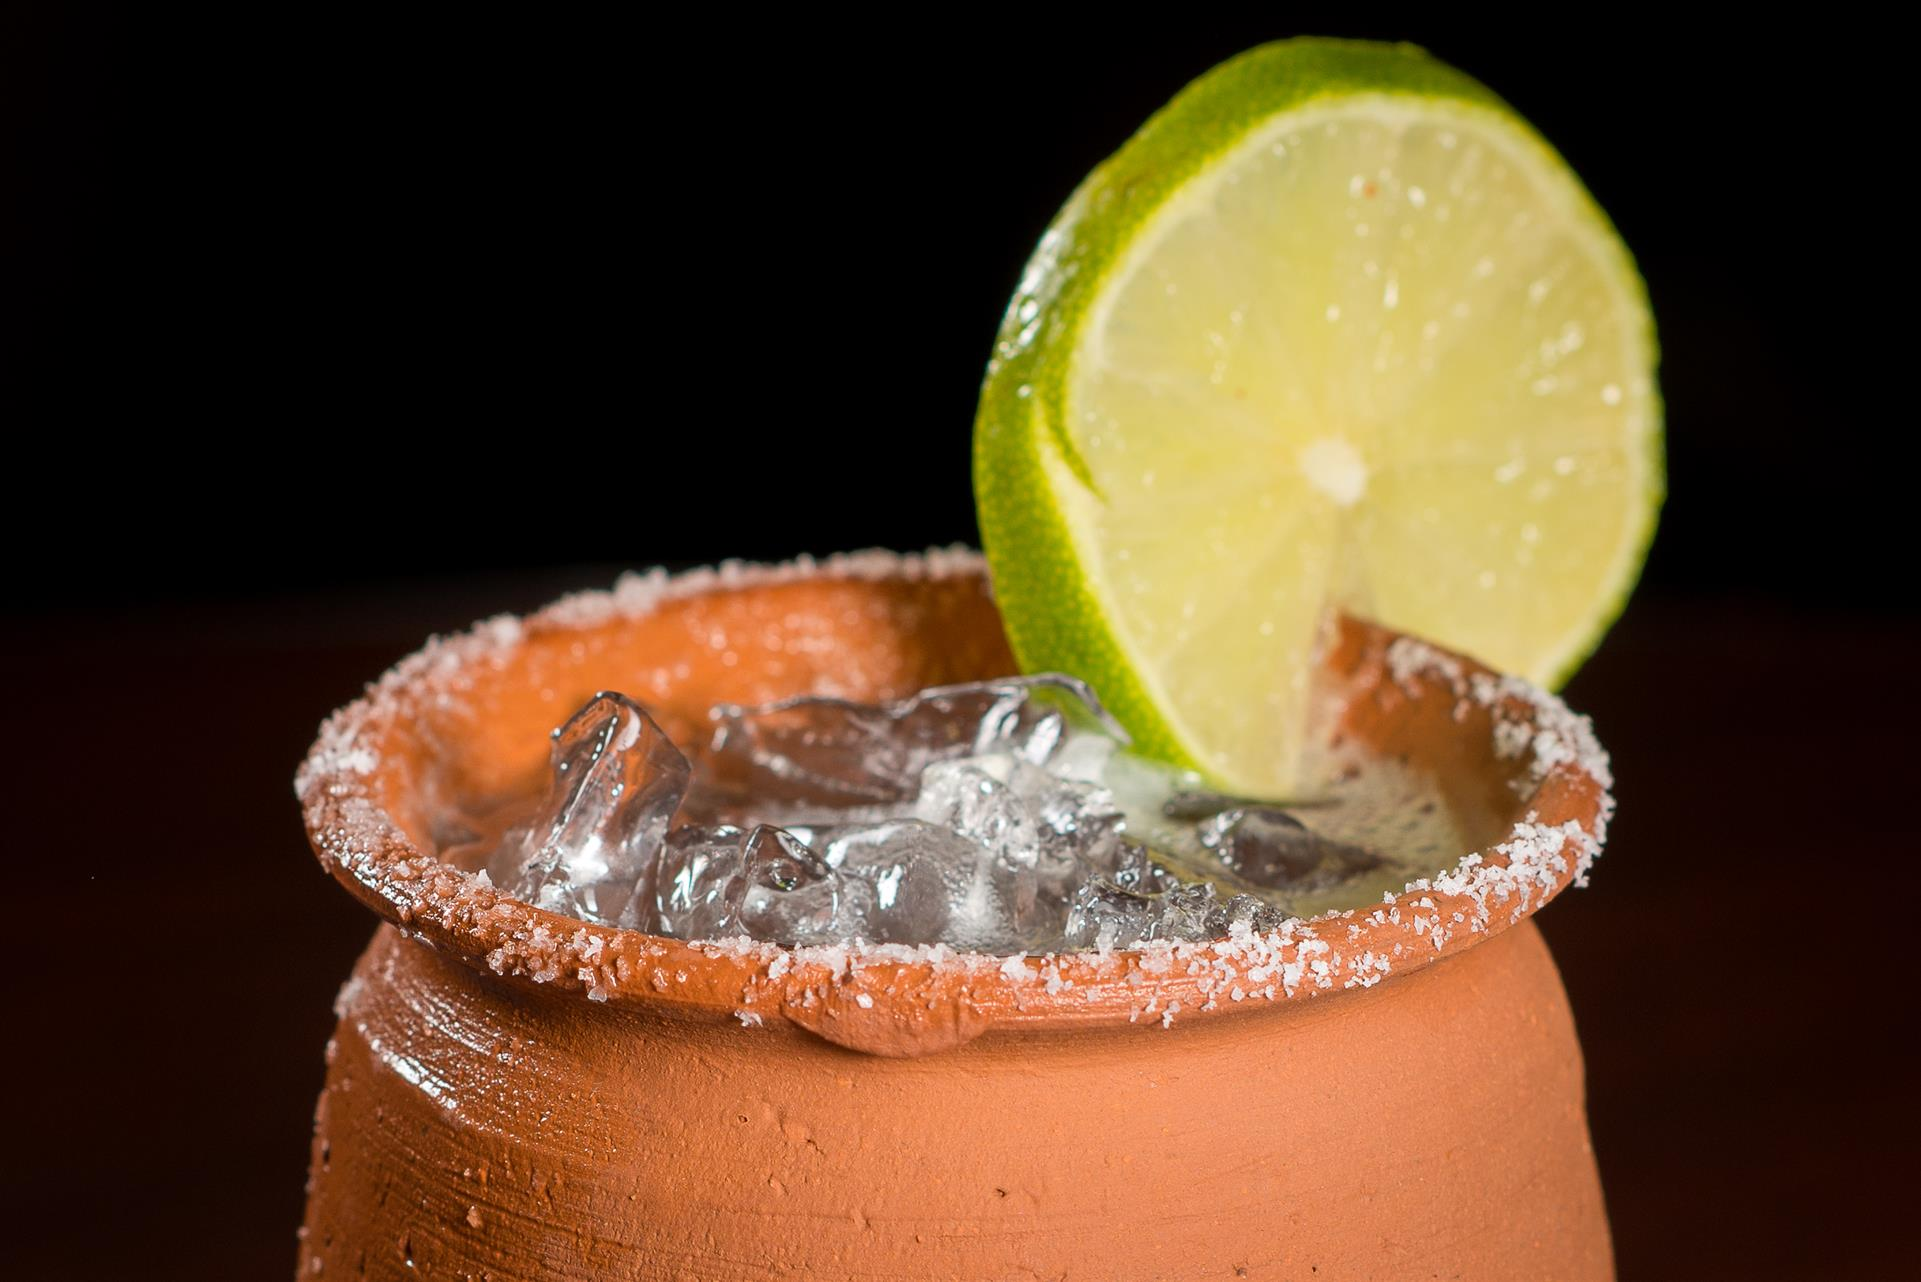 Margarita on the rocks with a lime and salt on the rim